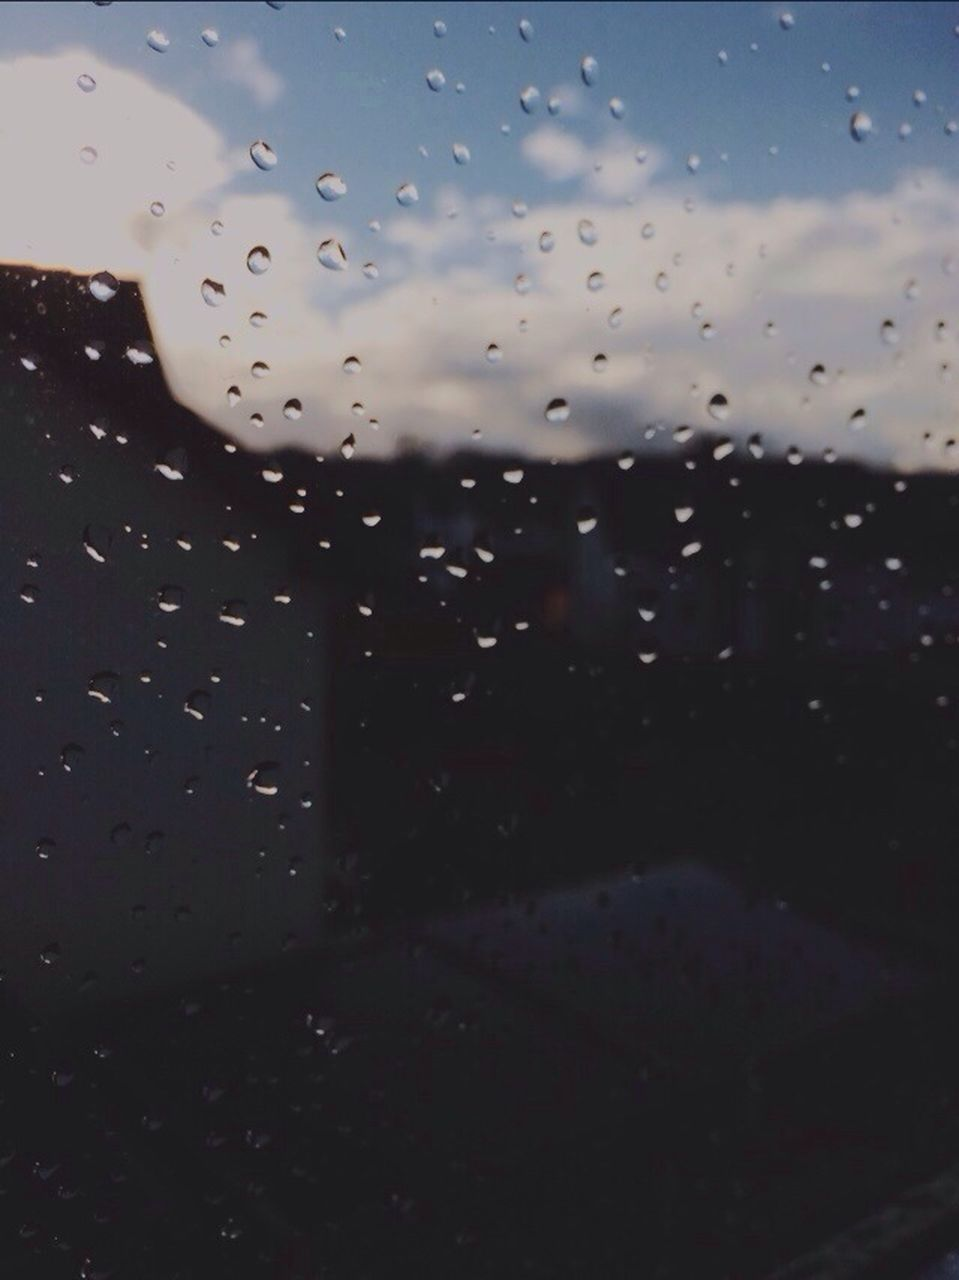 drop, water, wet, rain, raindrop, no people, window, close-up, weather, sky, nature, full frame, day, outdoors, beauty in nature, airplane wing, freshness